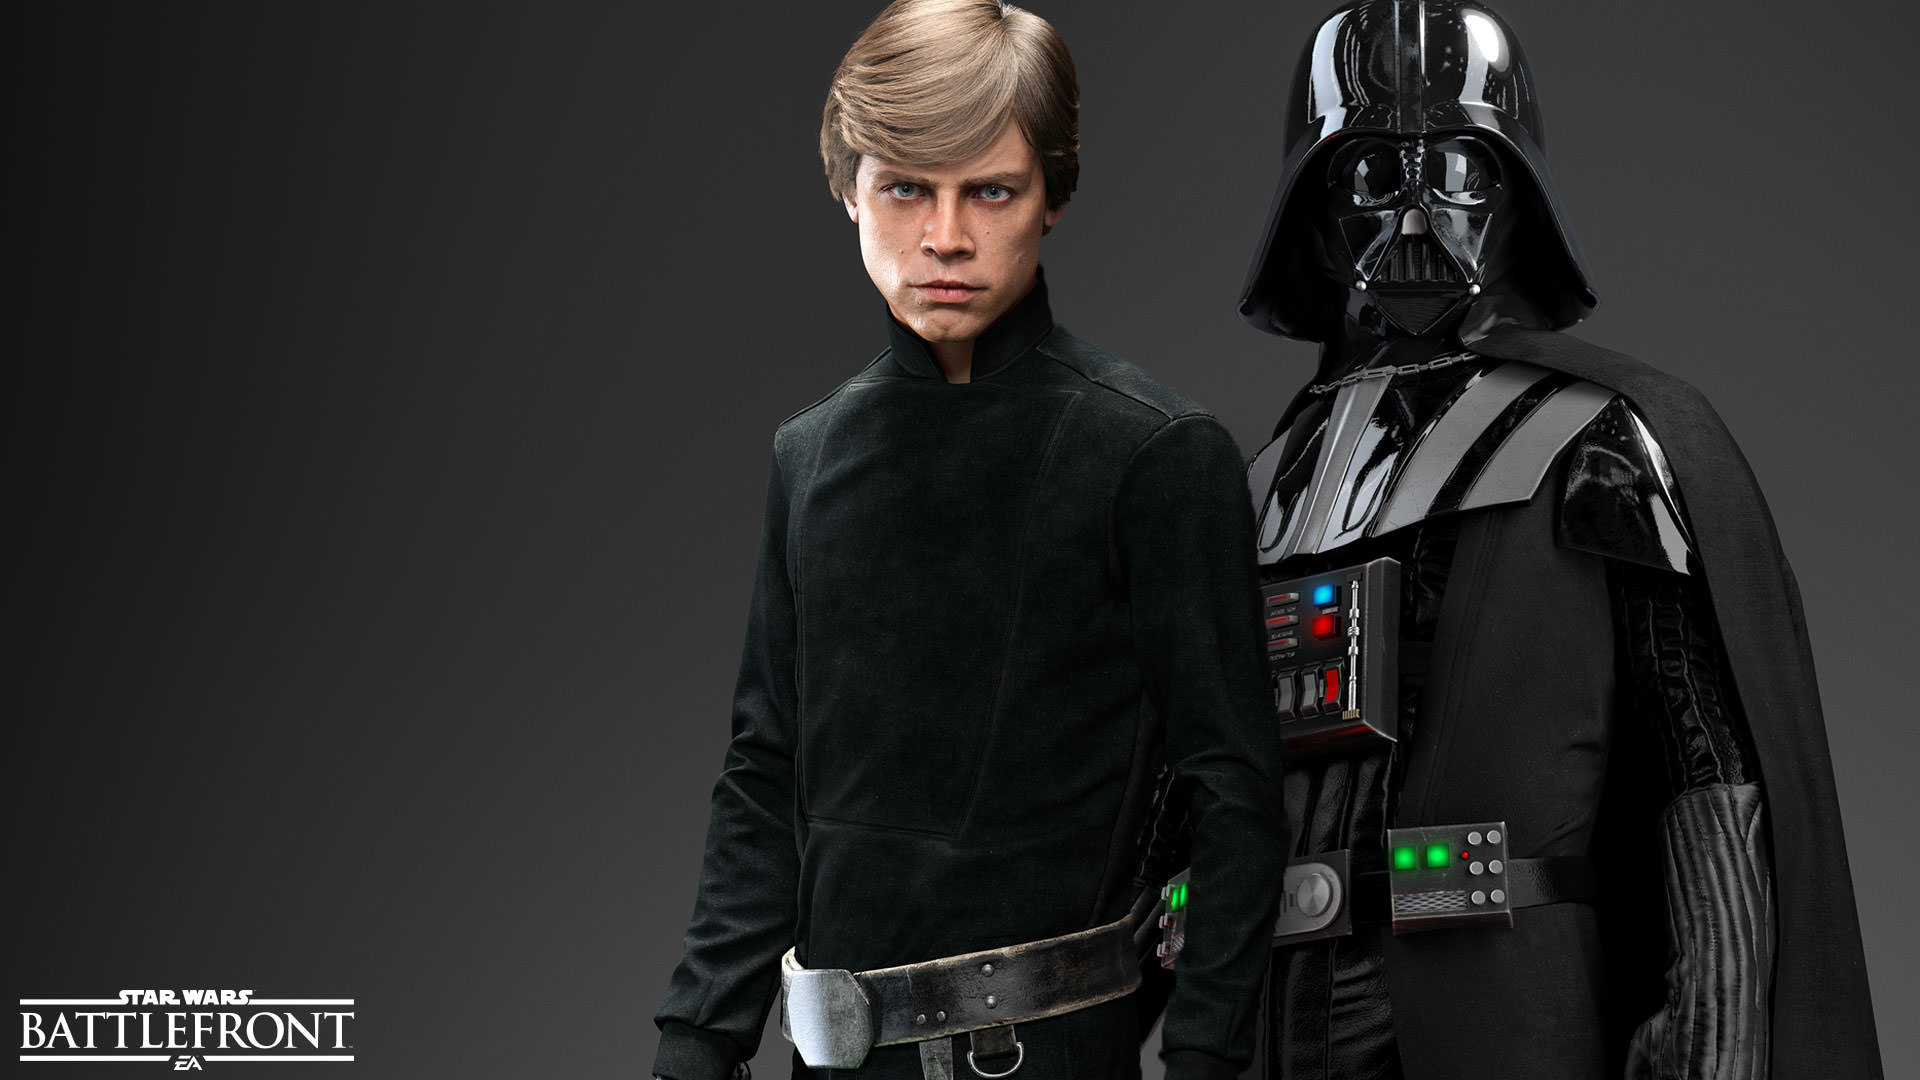 25 Star Wars Heroes and Villains Ranked from Weakest to ...